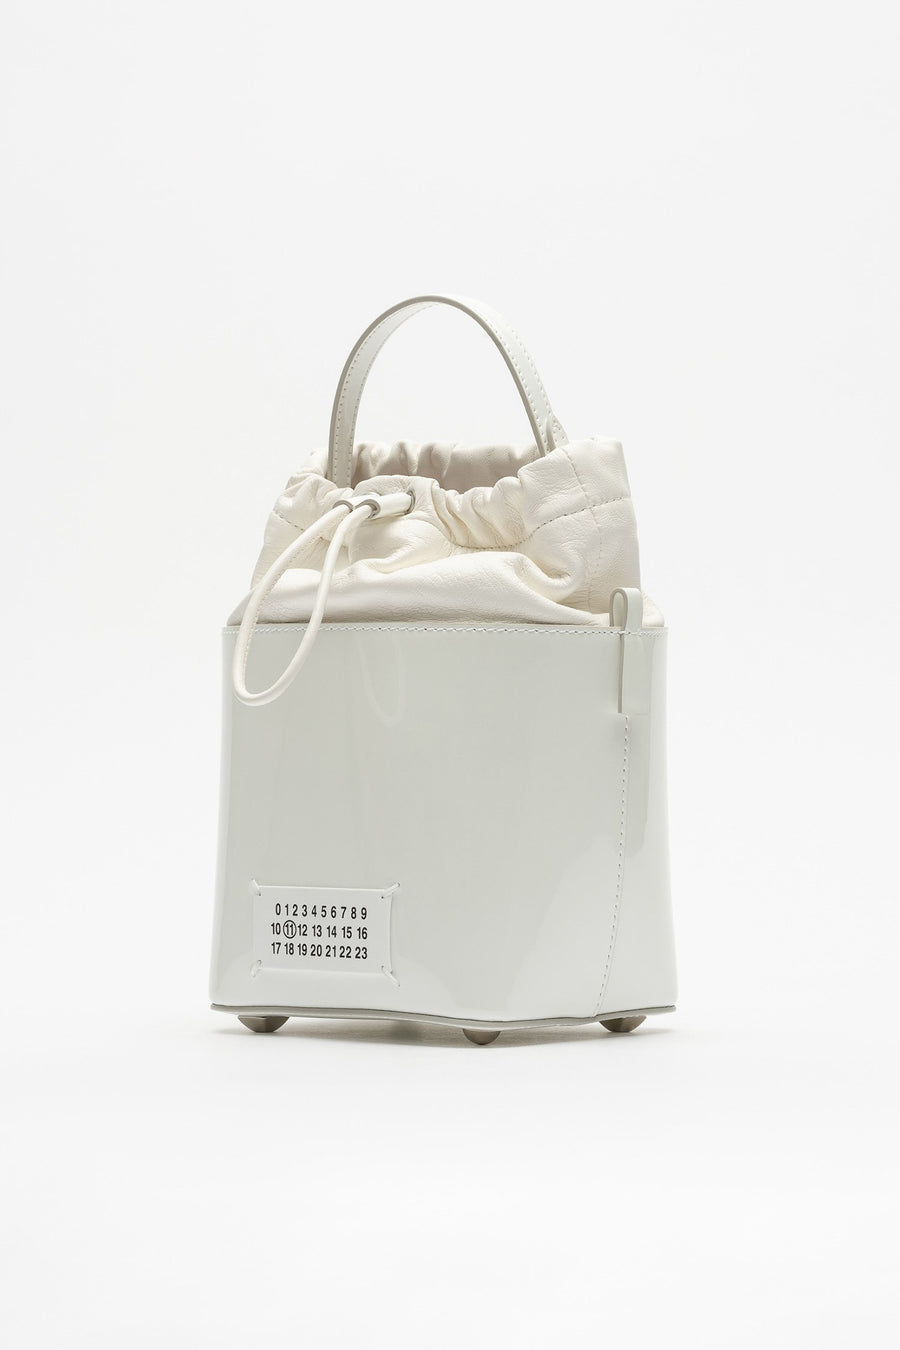 Maison Margiela Small Bag in White - Notre